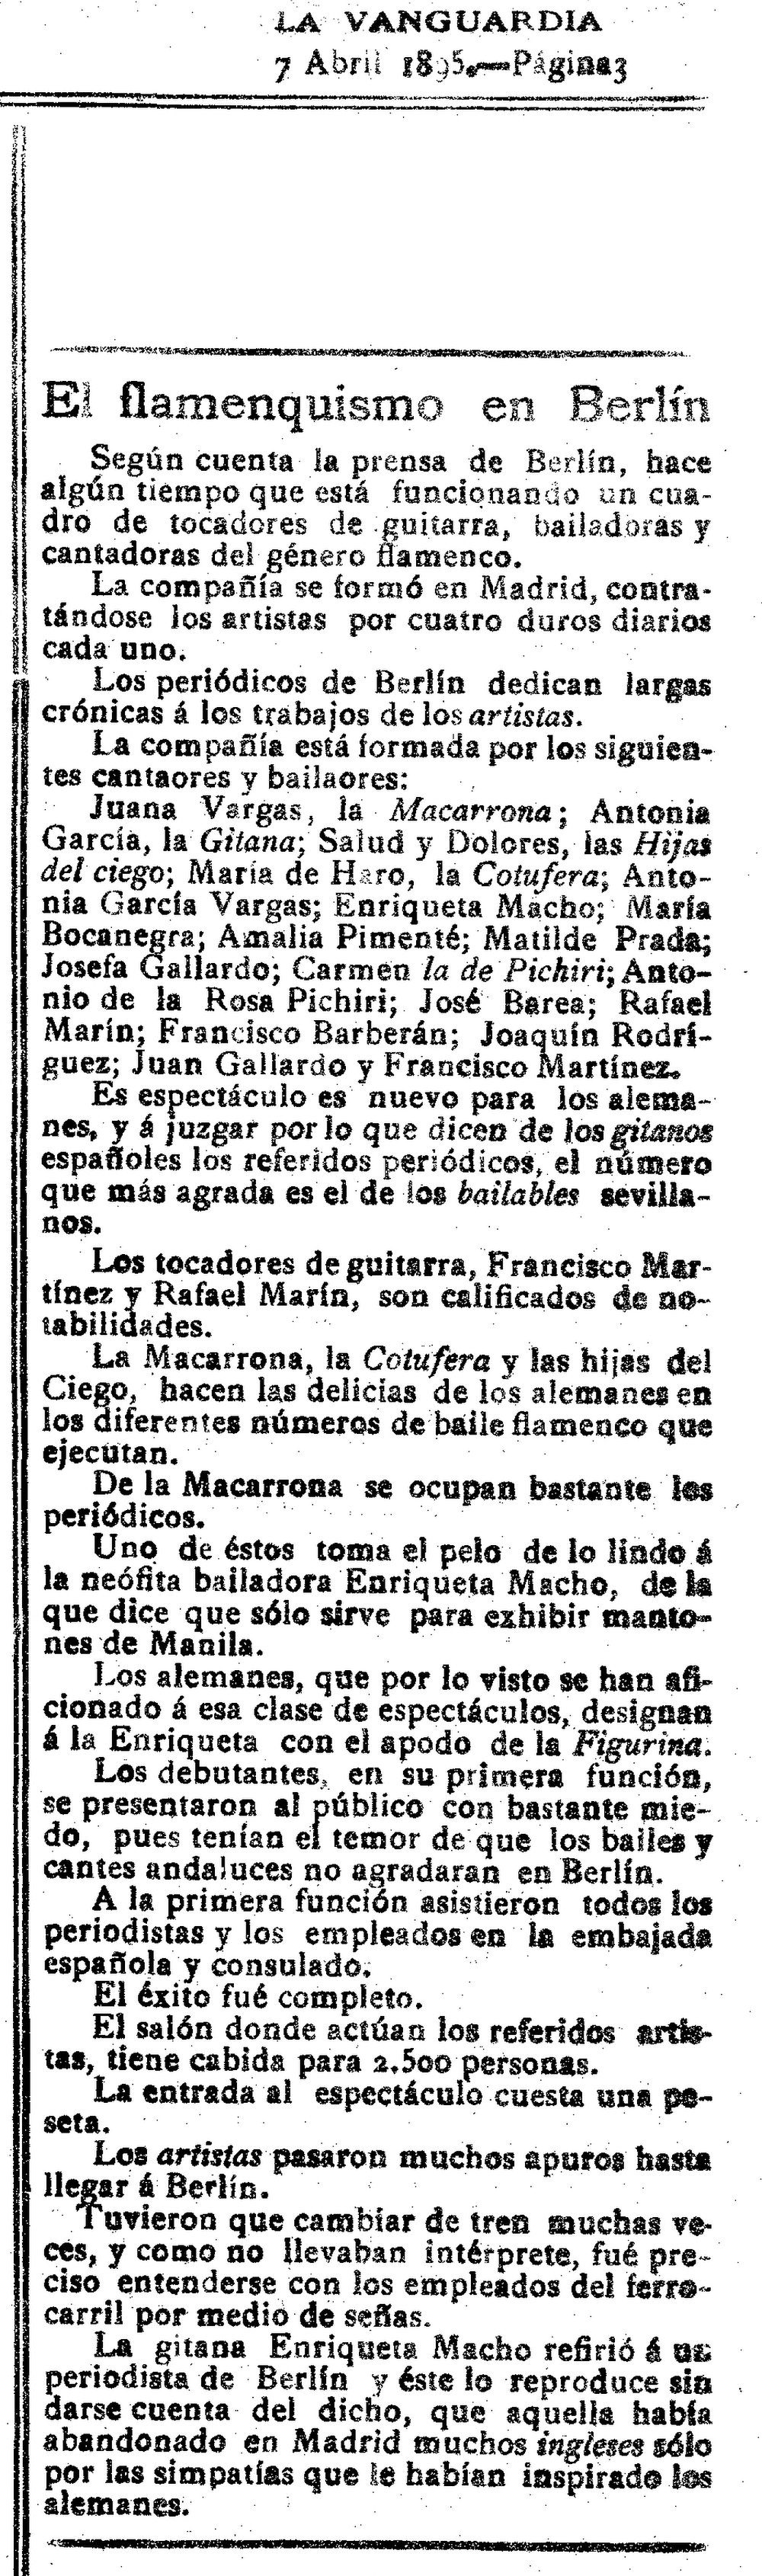 La Vanguardia  (7 de abril de 1895)